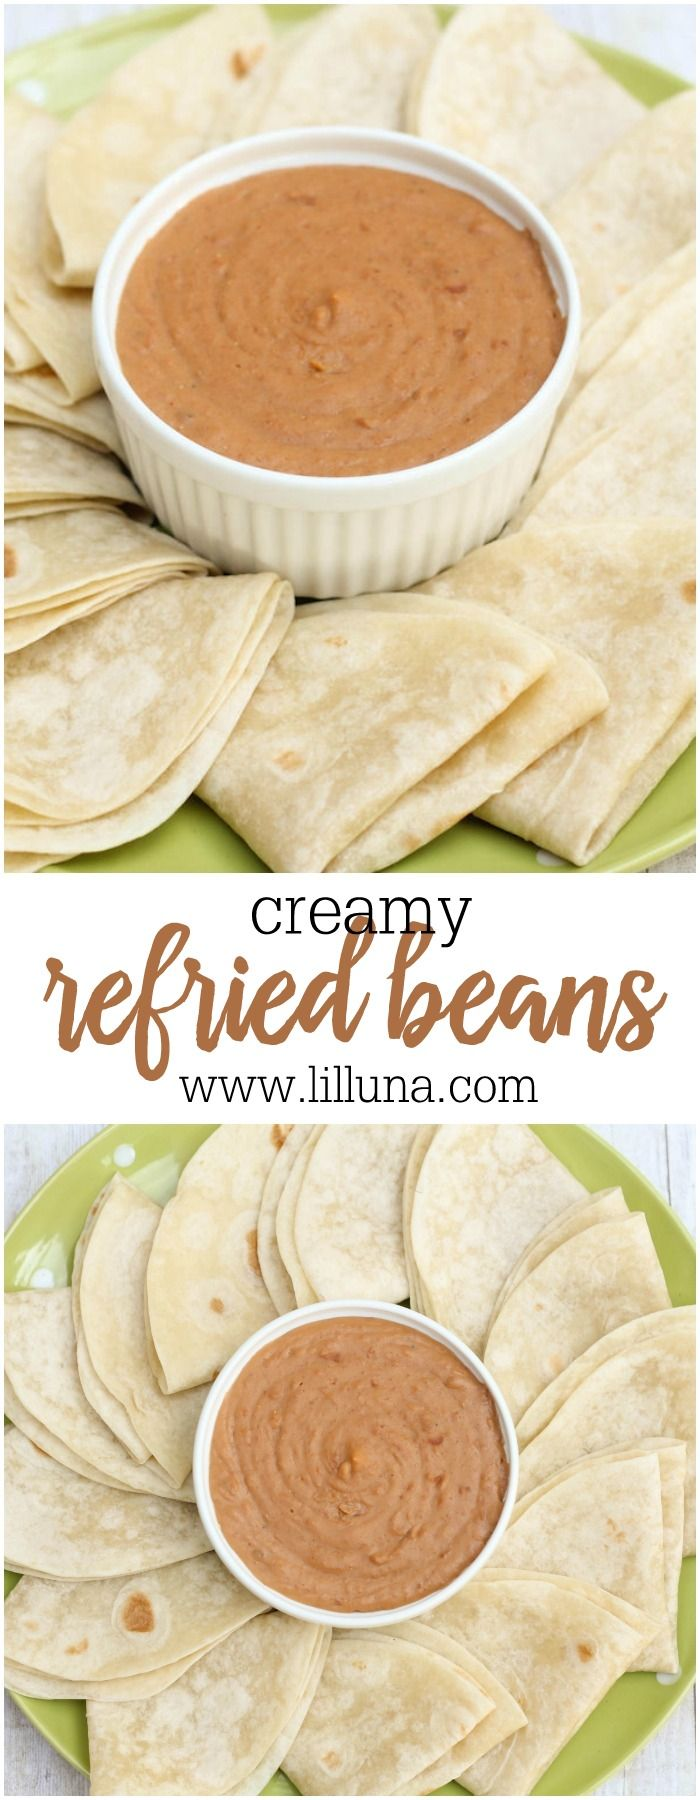 Creamy Refried Beans - perfect for dipping or for bean burritos!!